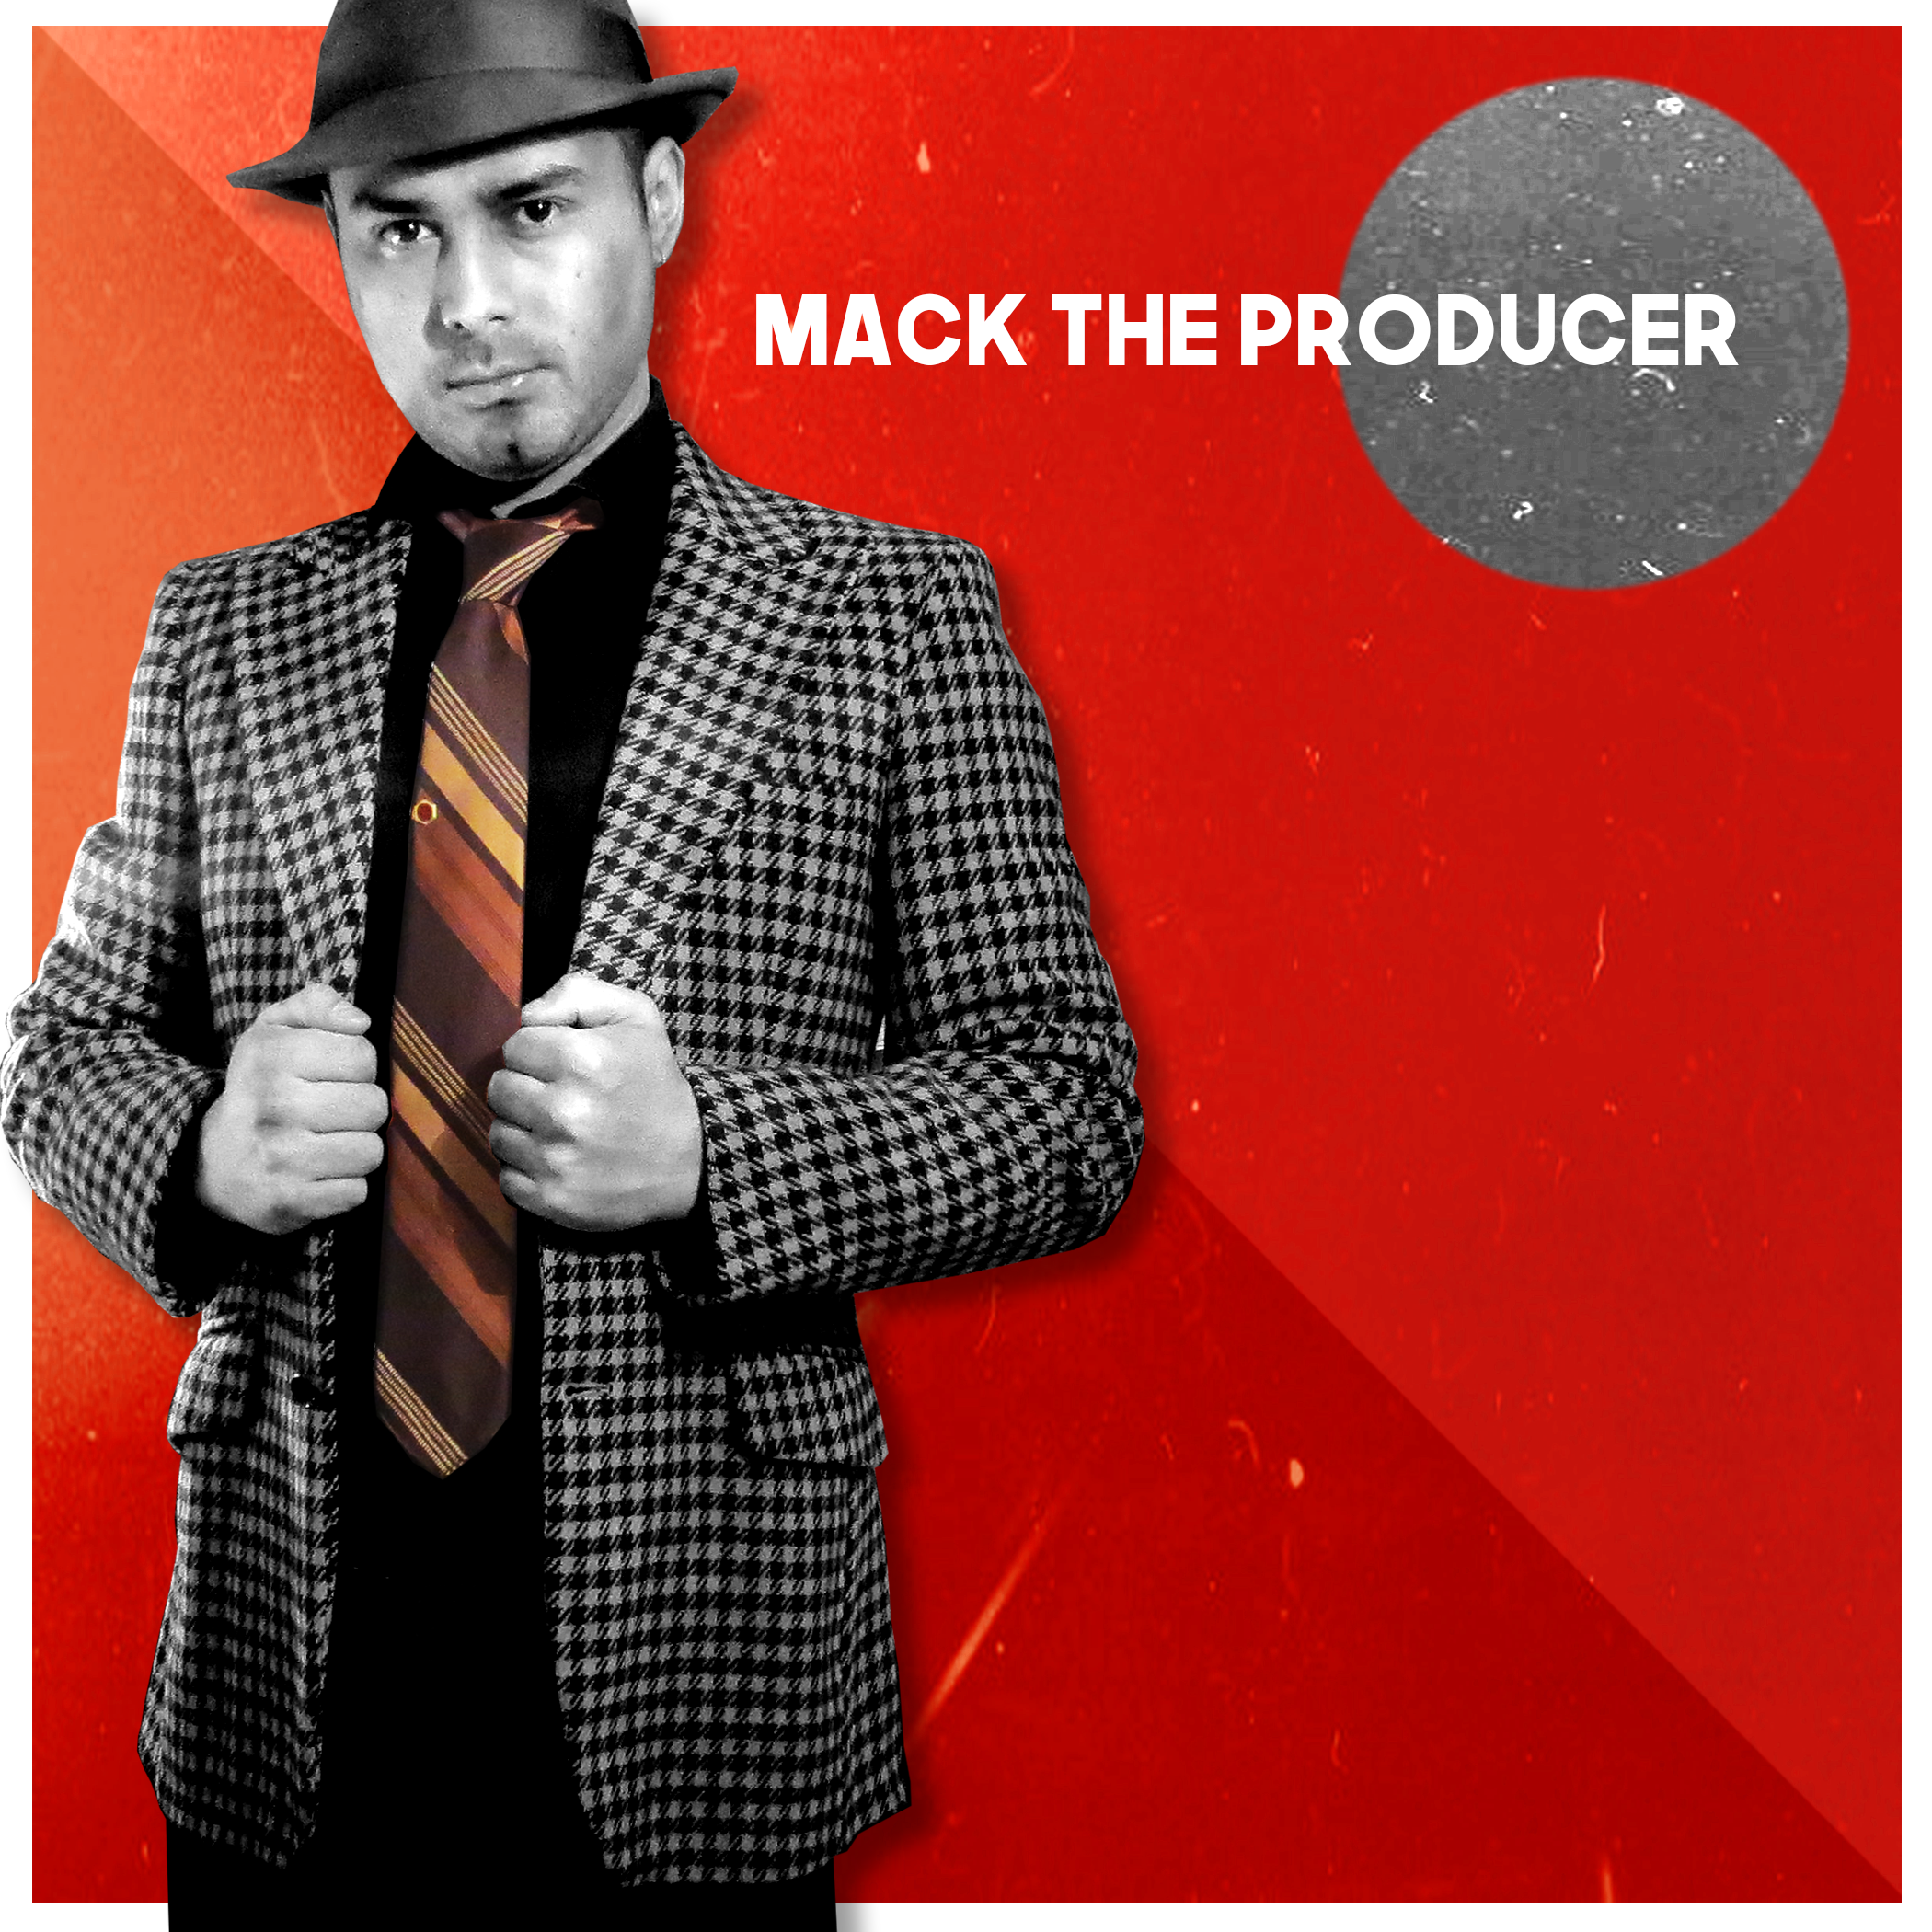 Mack The Producer - PROMO PIC - Bassfunk UK.png